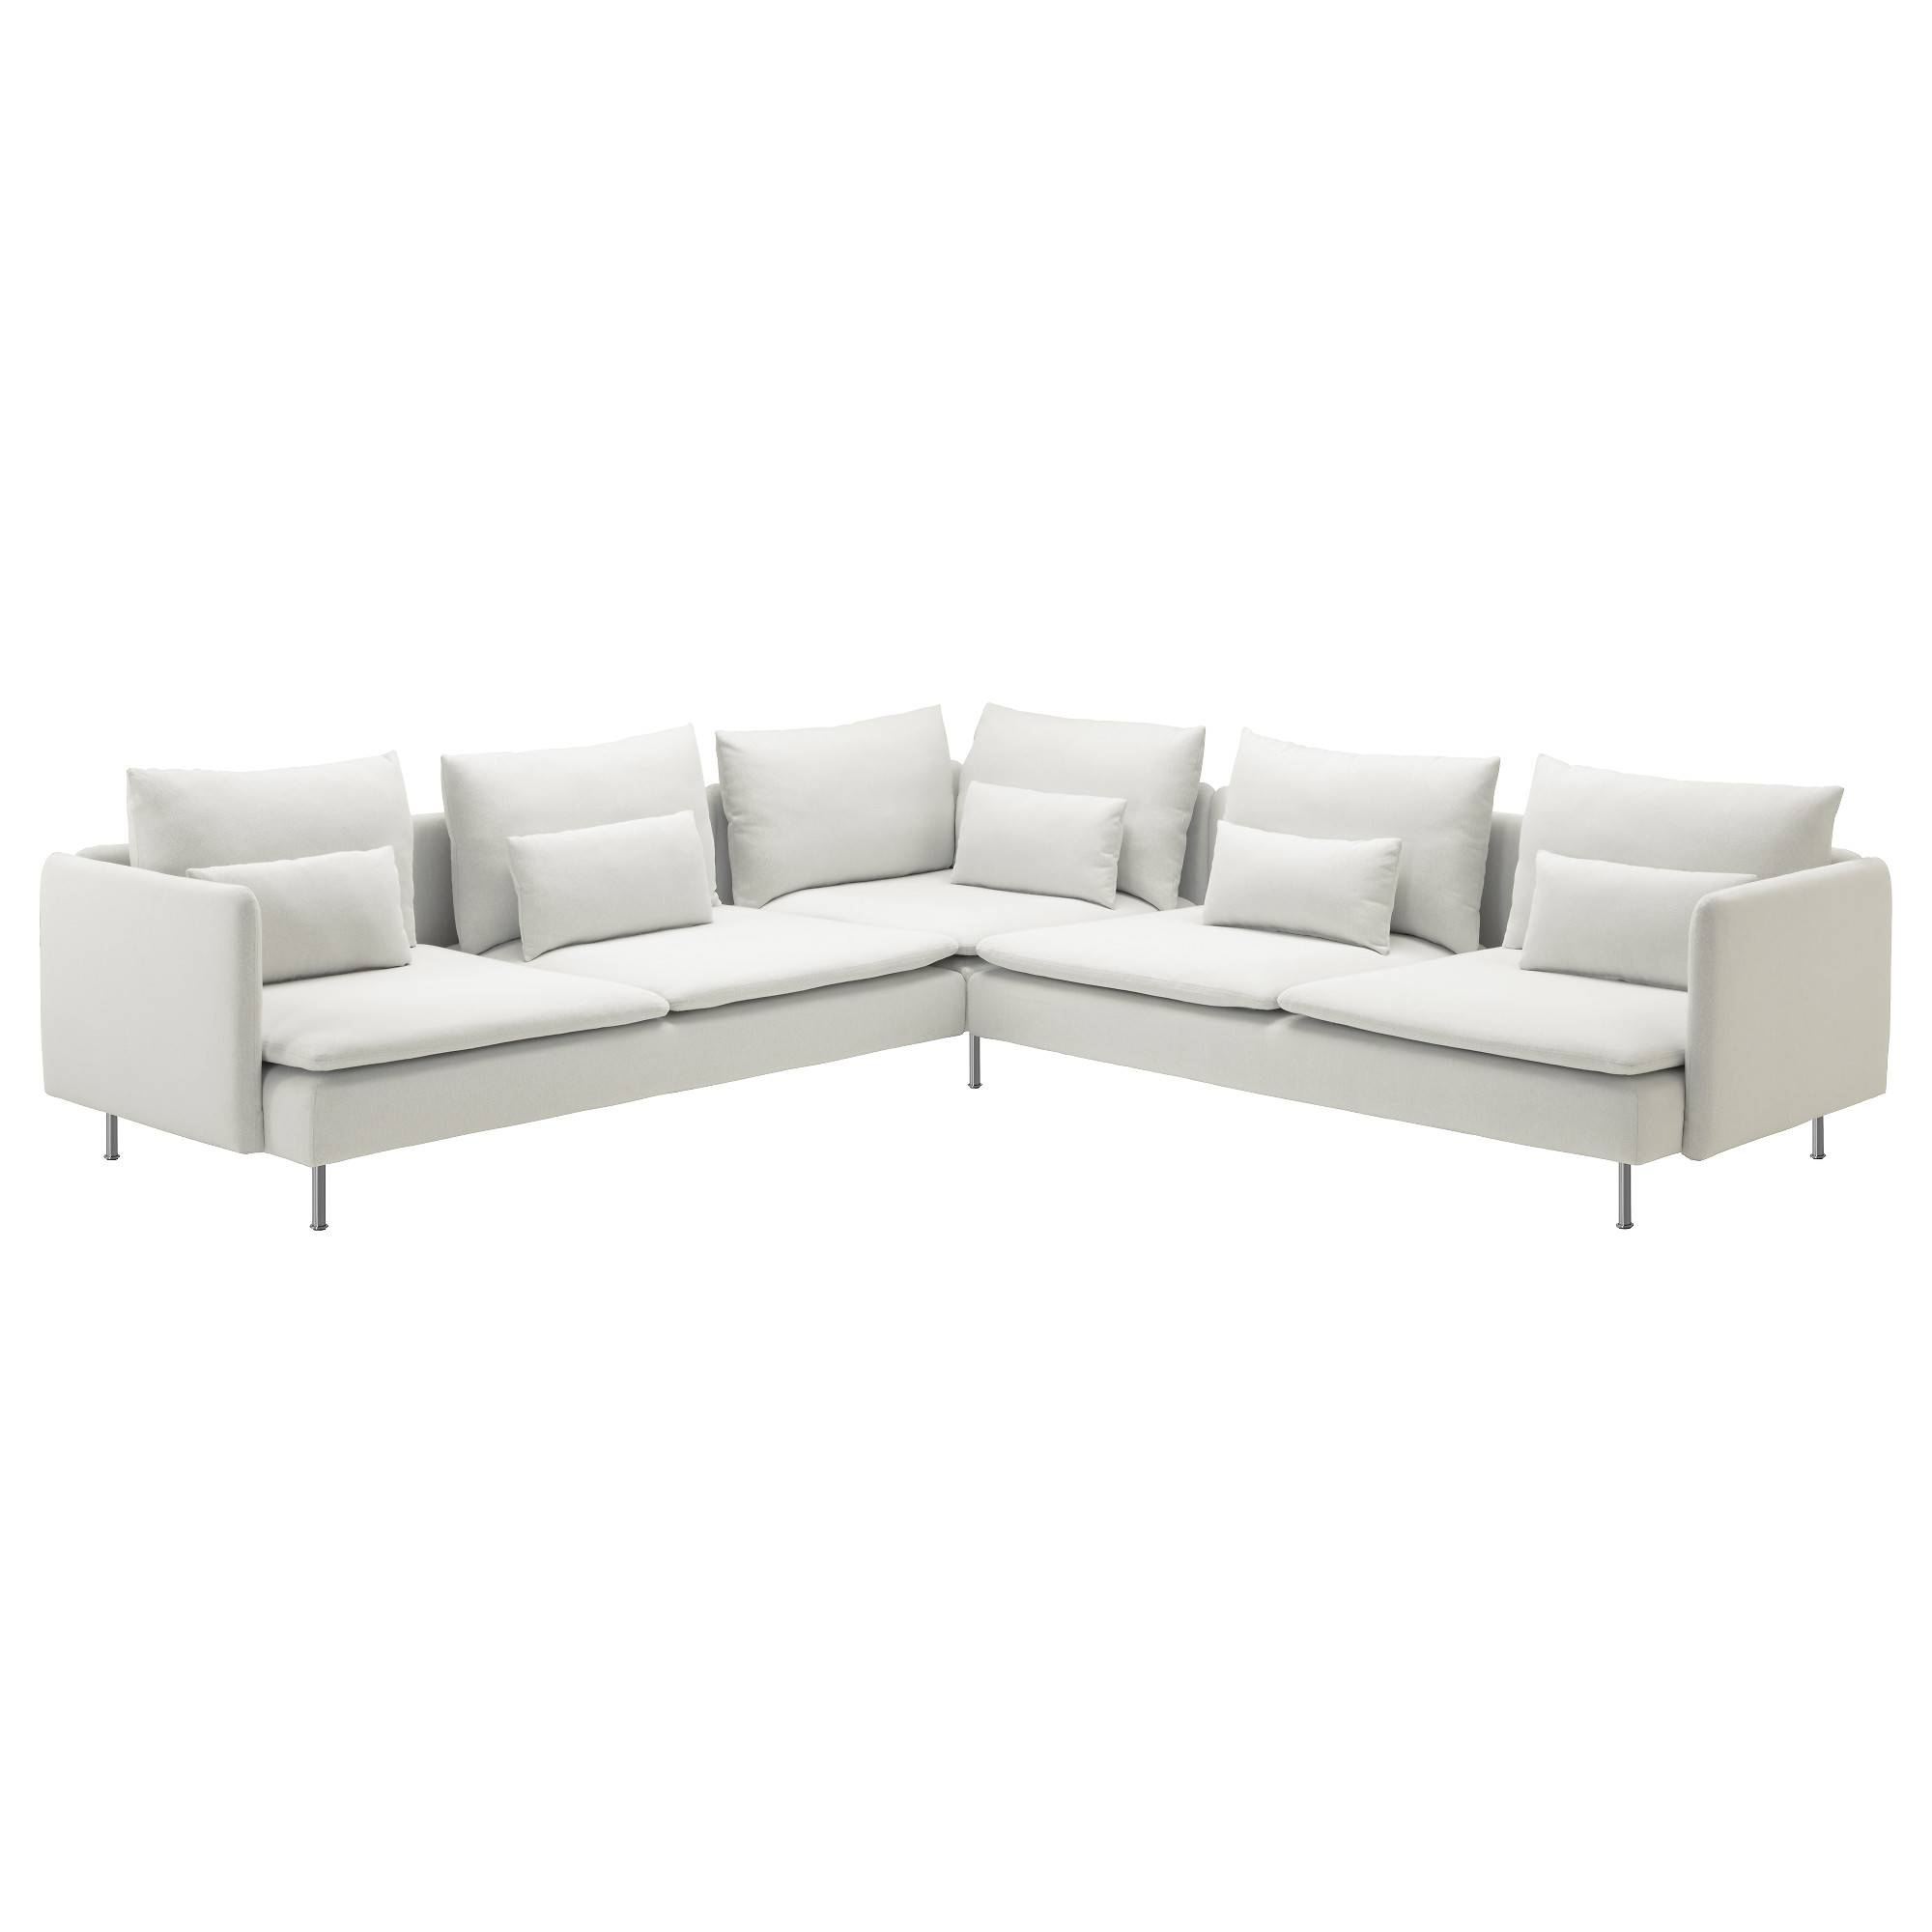 Söderhamn Series - Ikea with regard to 4 Seat Couch (Image 27 of 30)